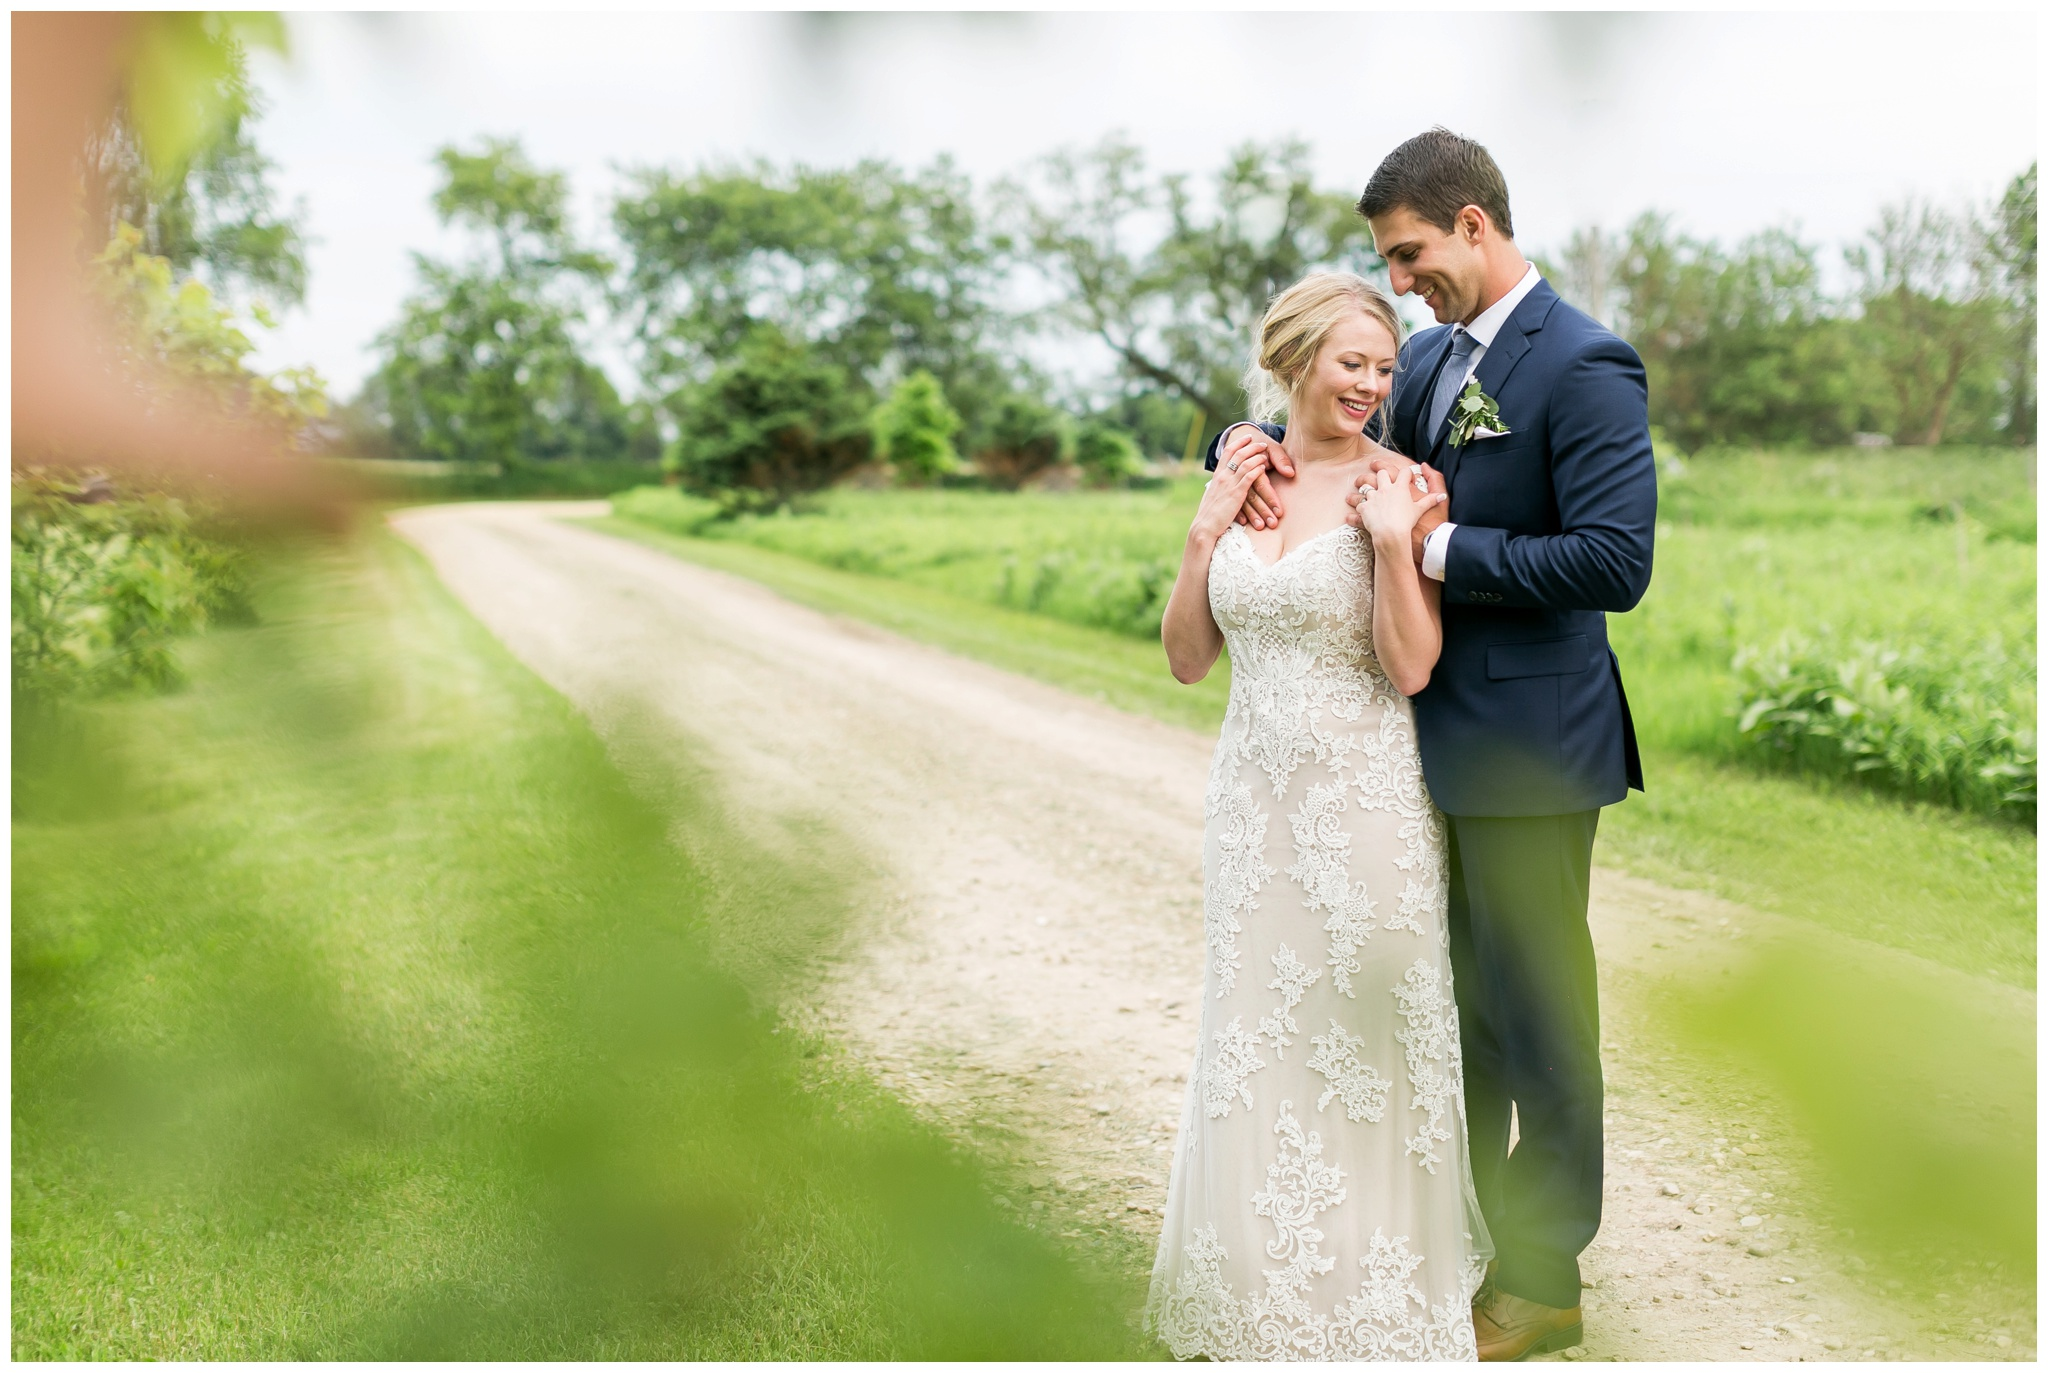 private_estate_wedding_stoughton_wisconsin_wedding_caynay_photo_3888.jpg